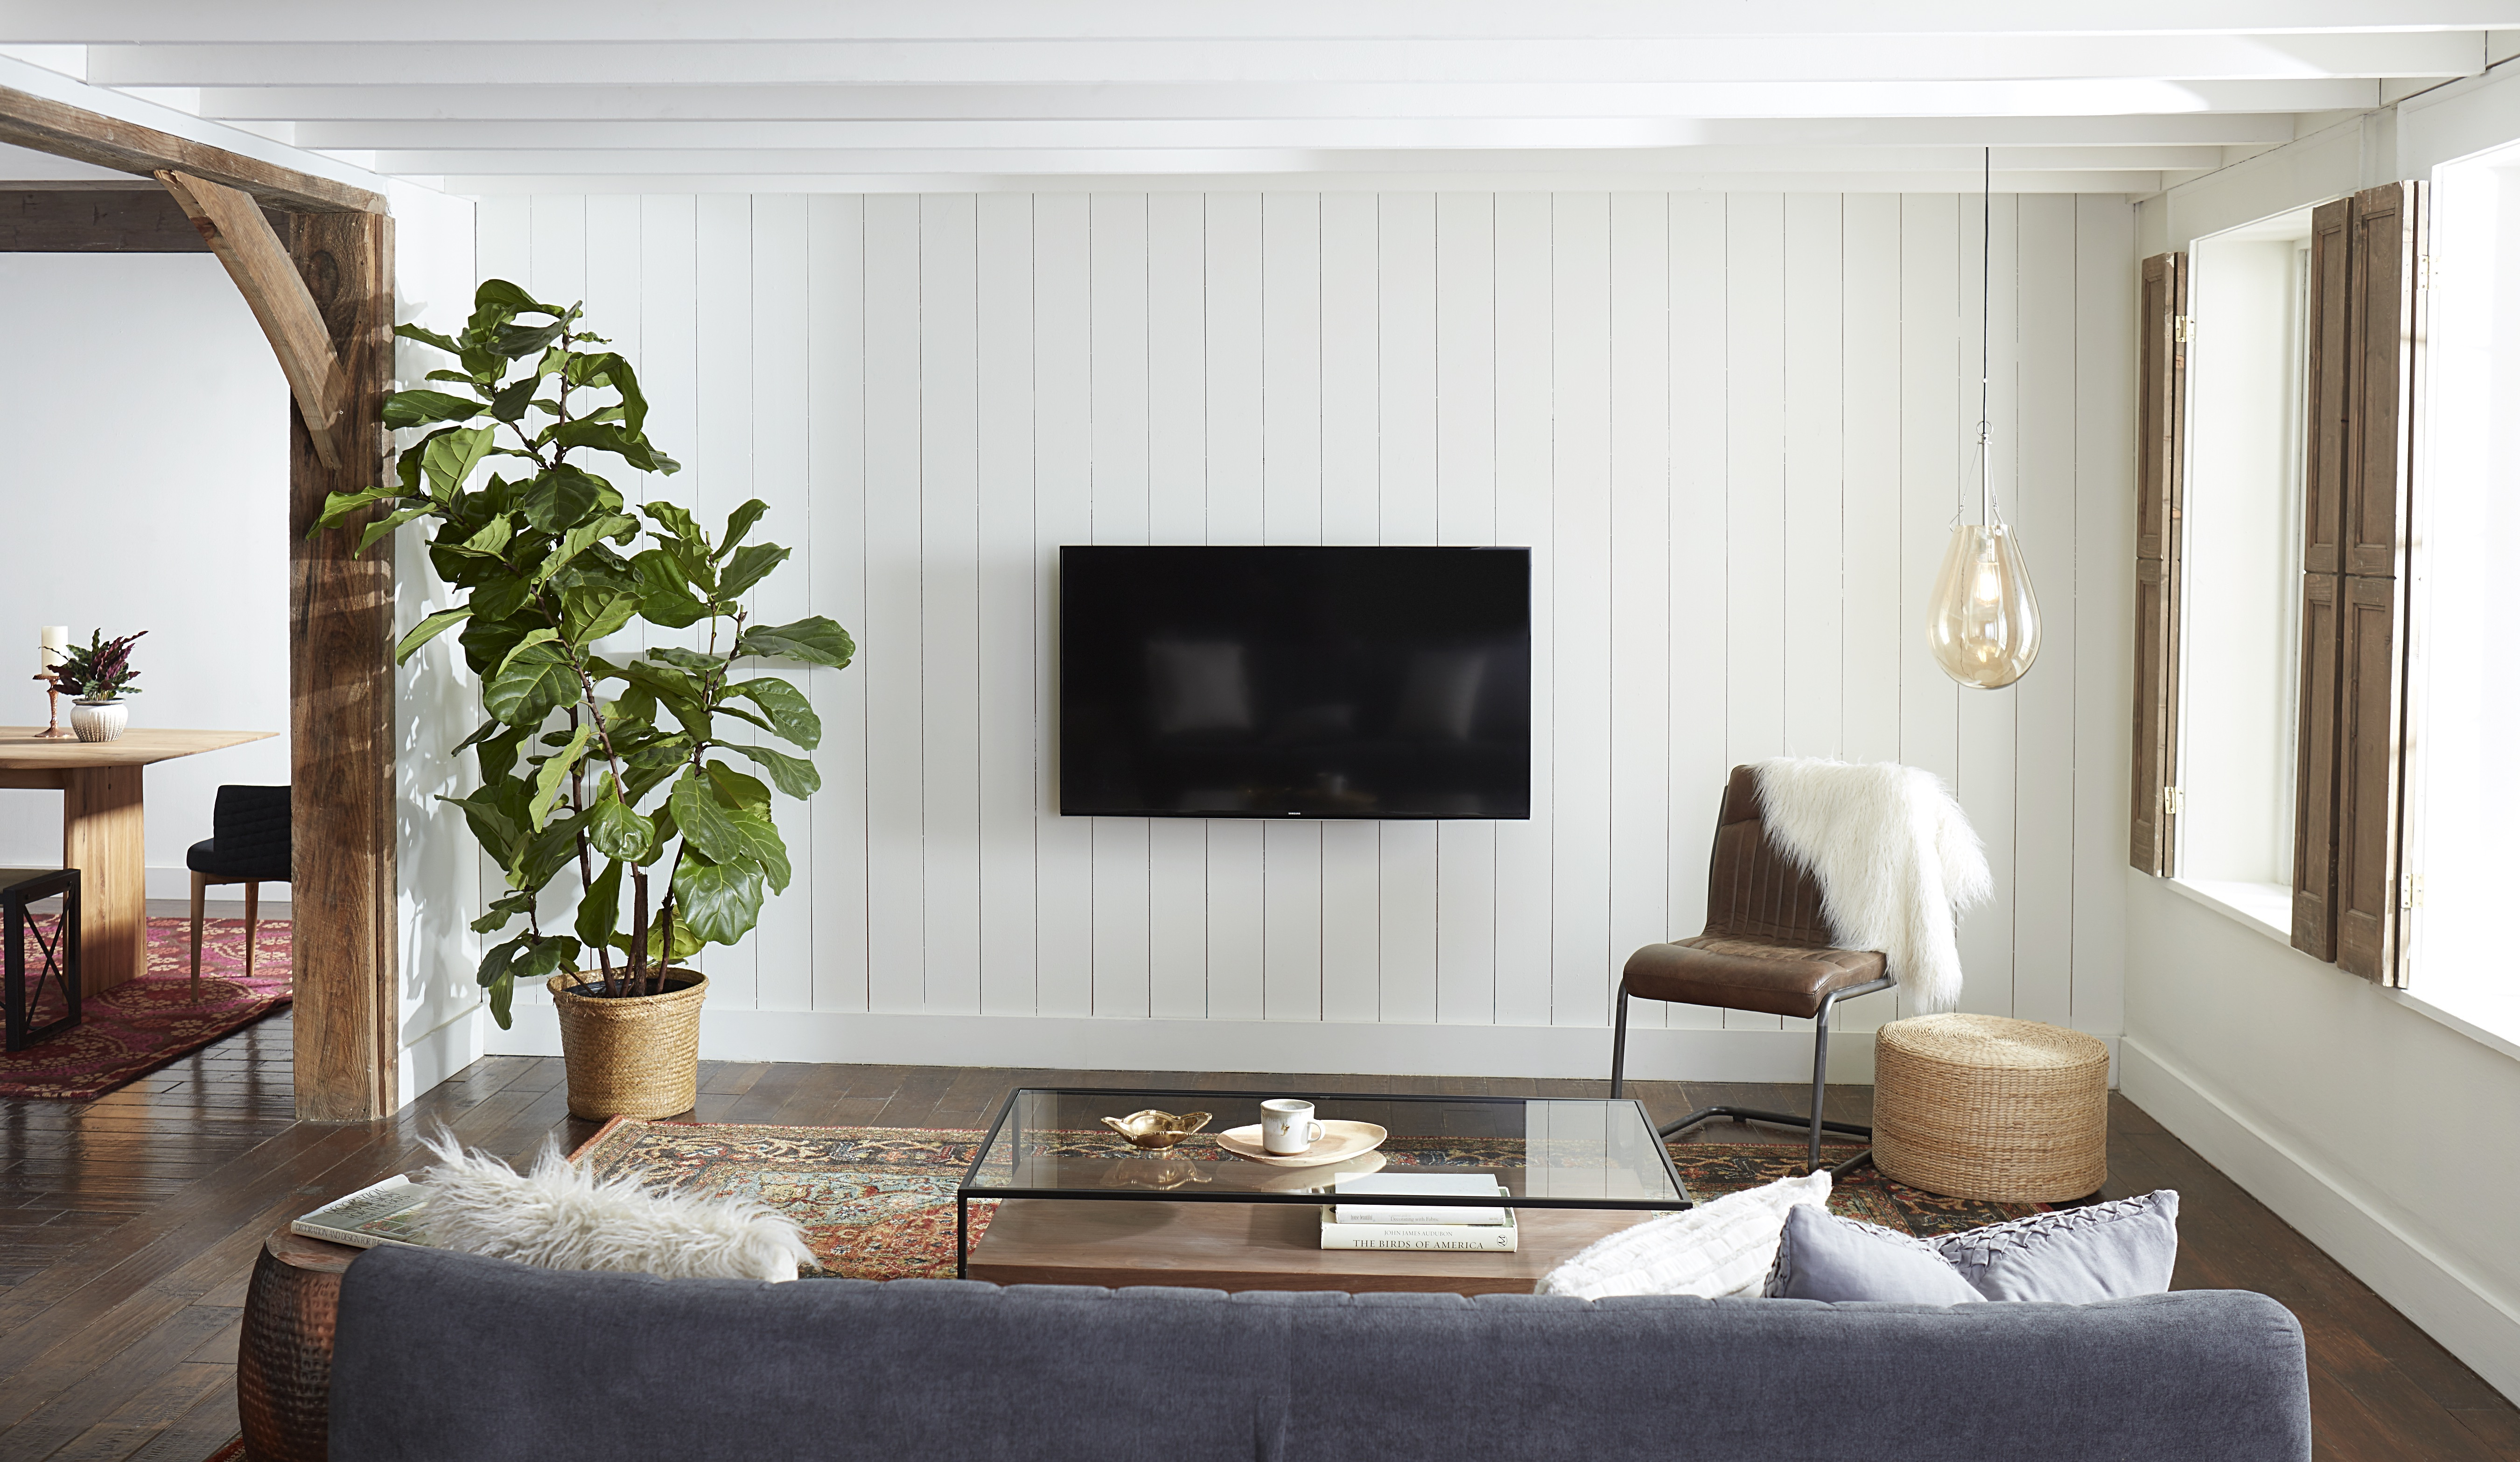 Where to Mount a TV in the Living Room